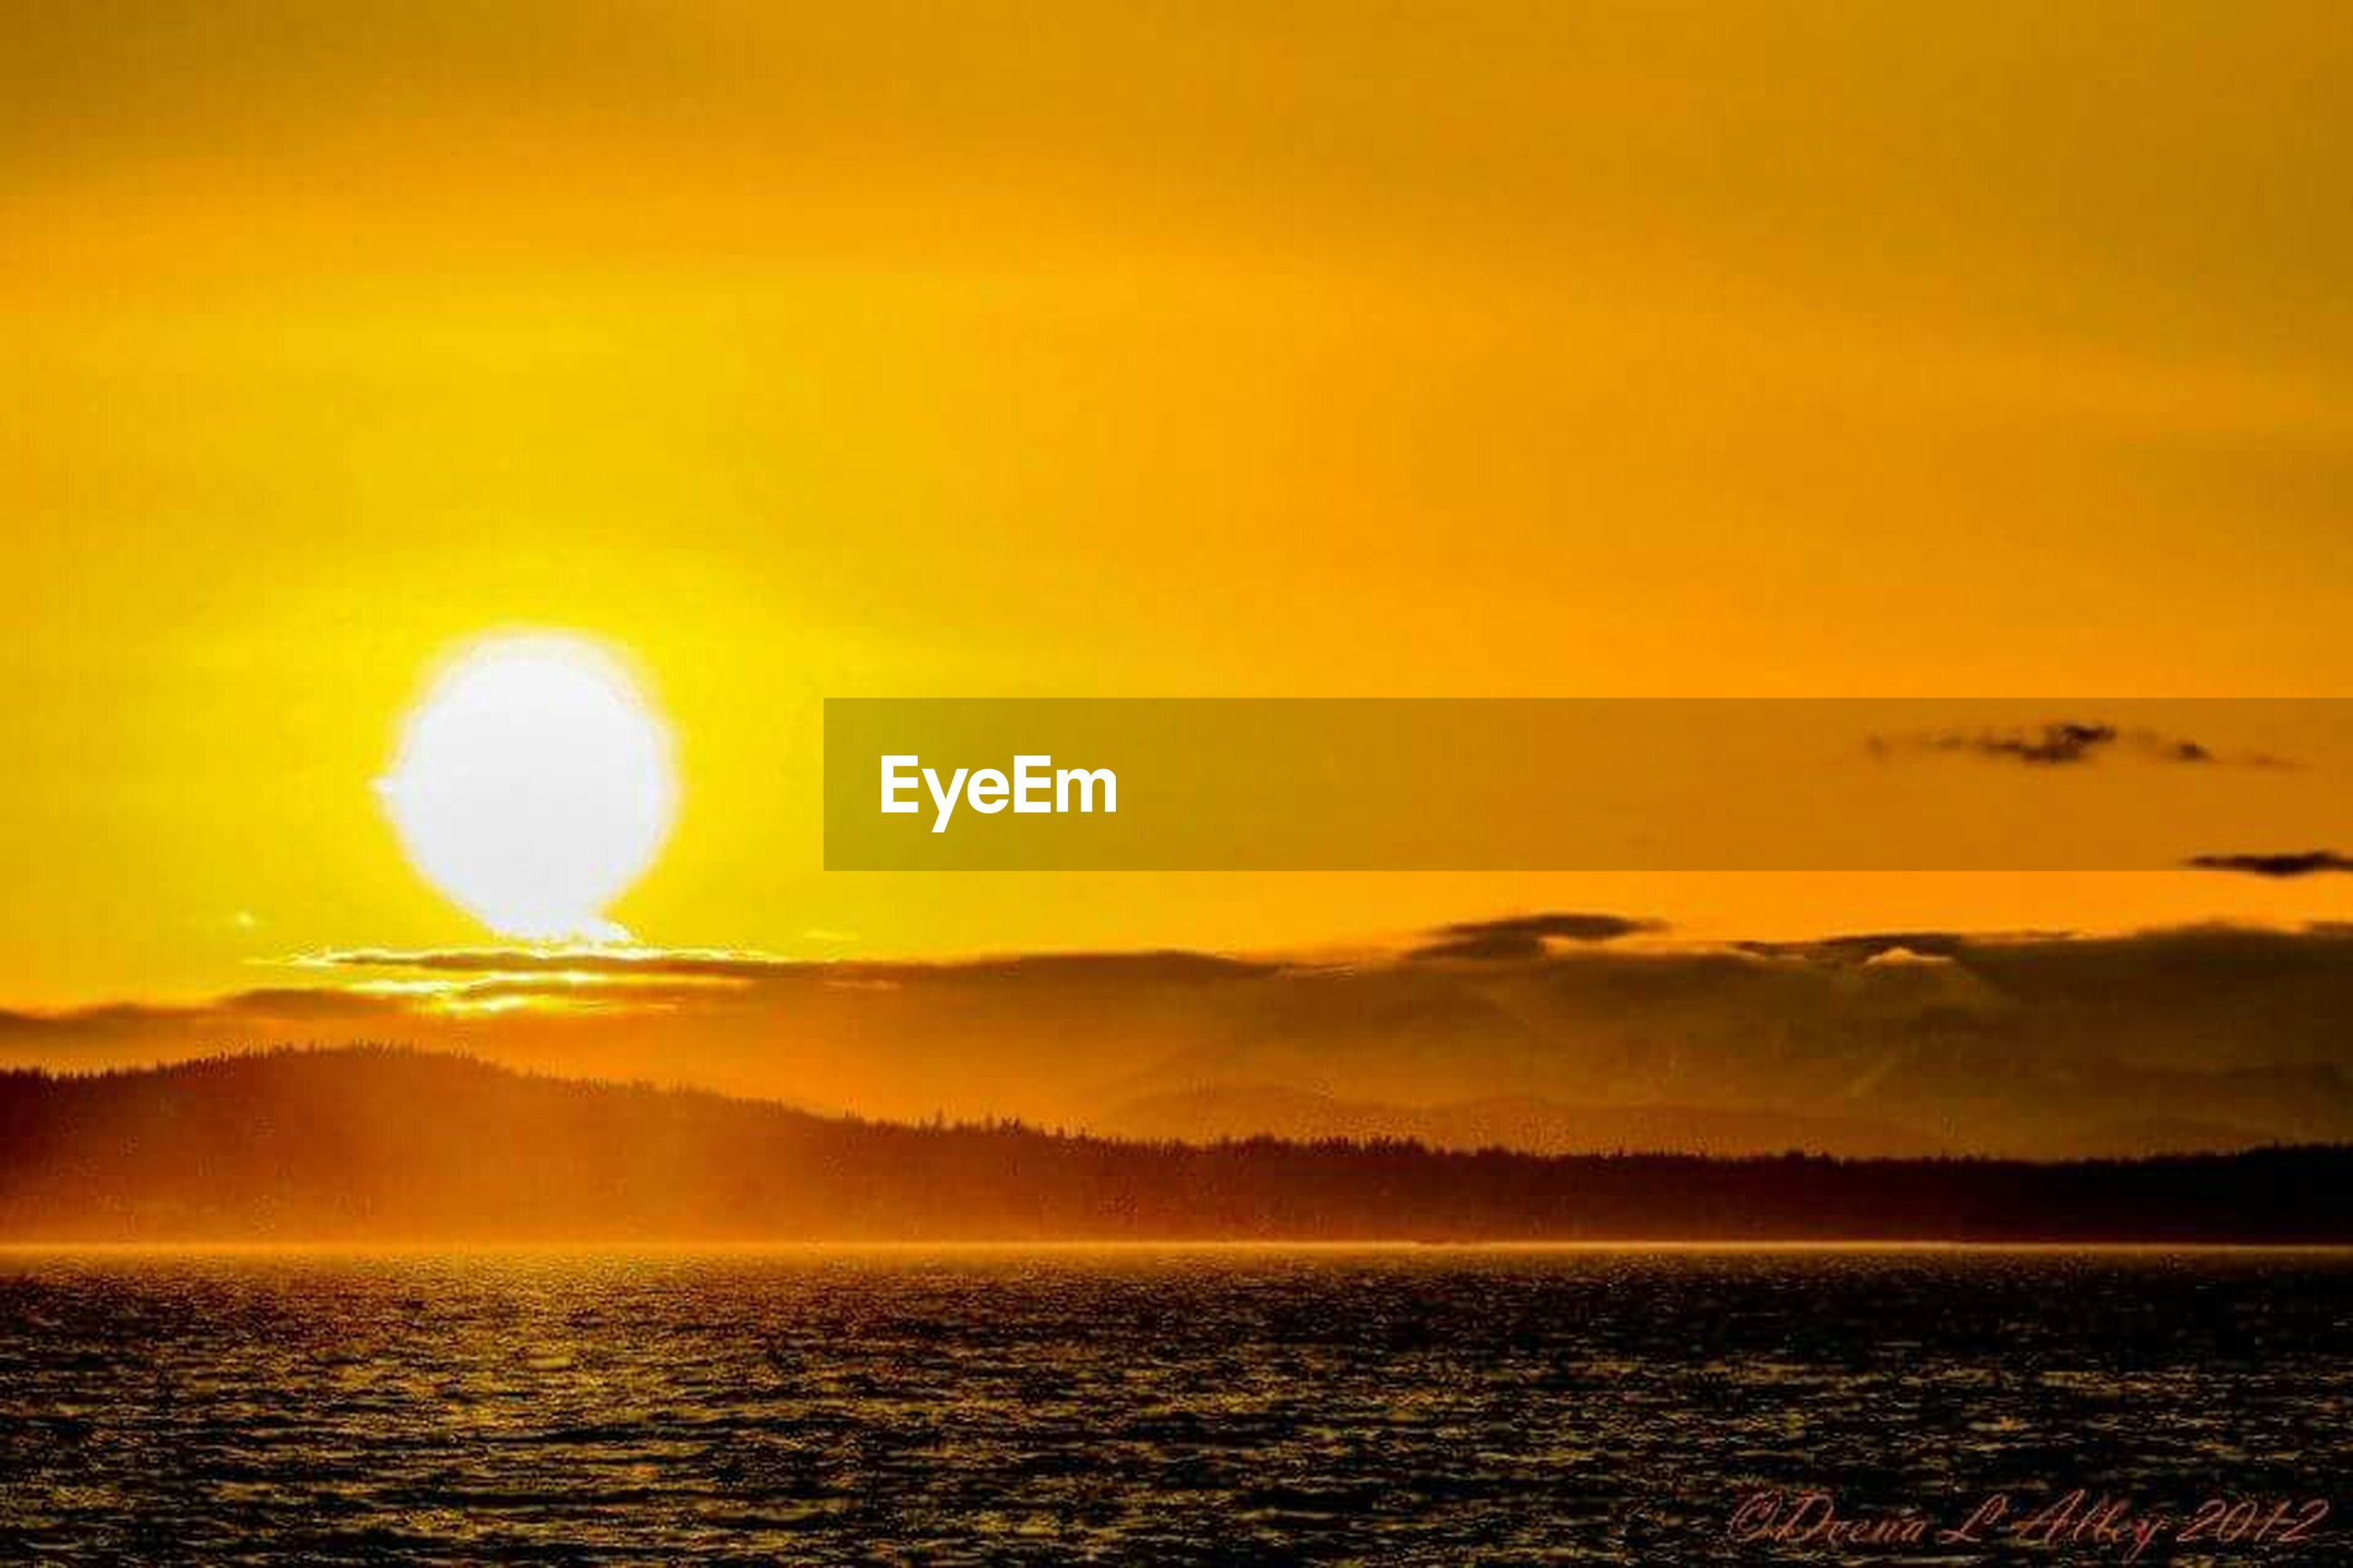 sunset, scenics, sun, tranquil scene, water, beauty in nature, tranquility, orange color, waterfront, idyllic, sky, nature, sea, reflection, mountain, silhouette, sunlight, outdoors, lake, non-urban scene